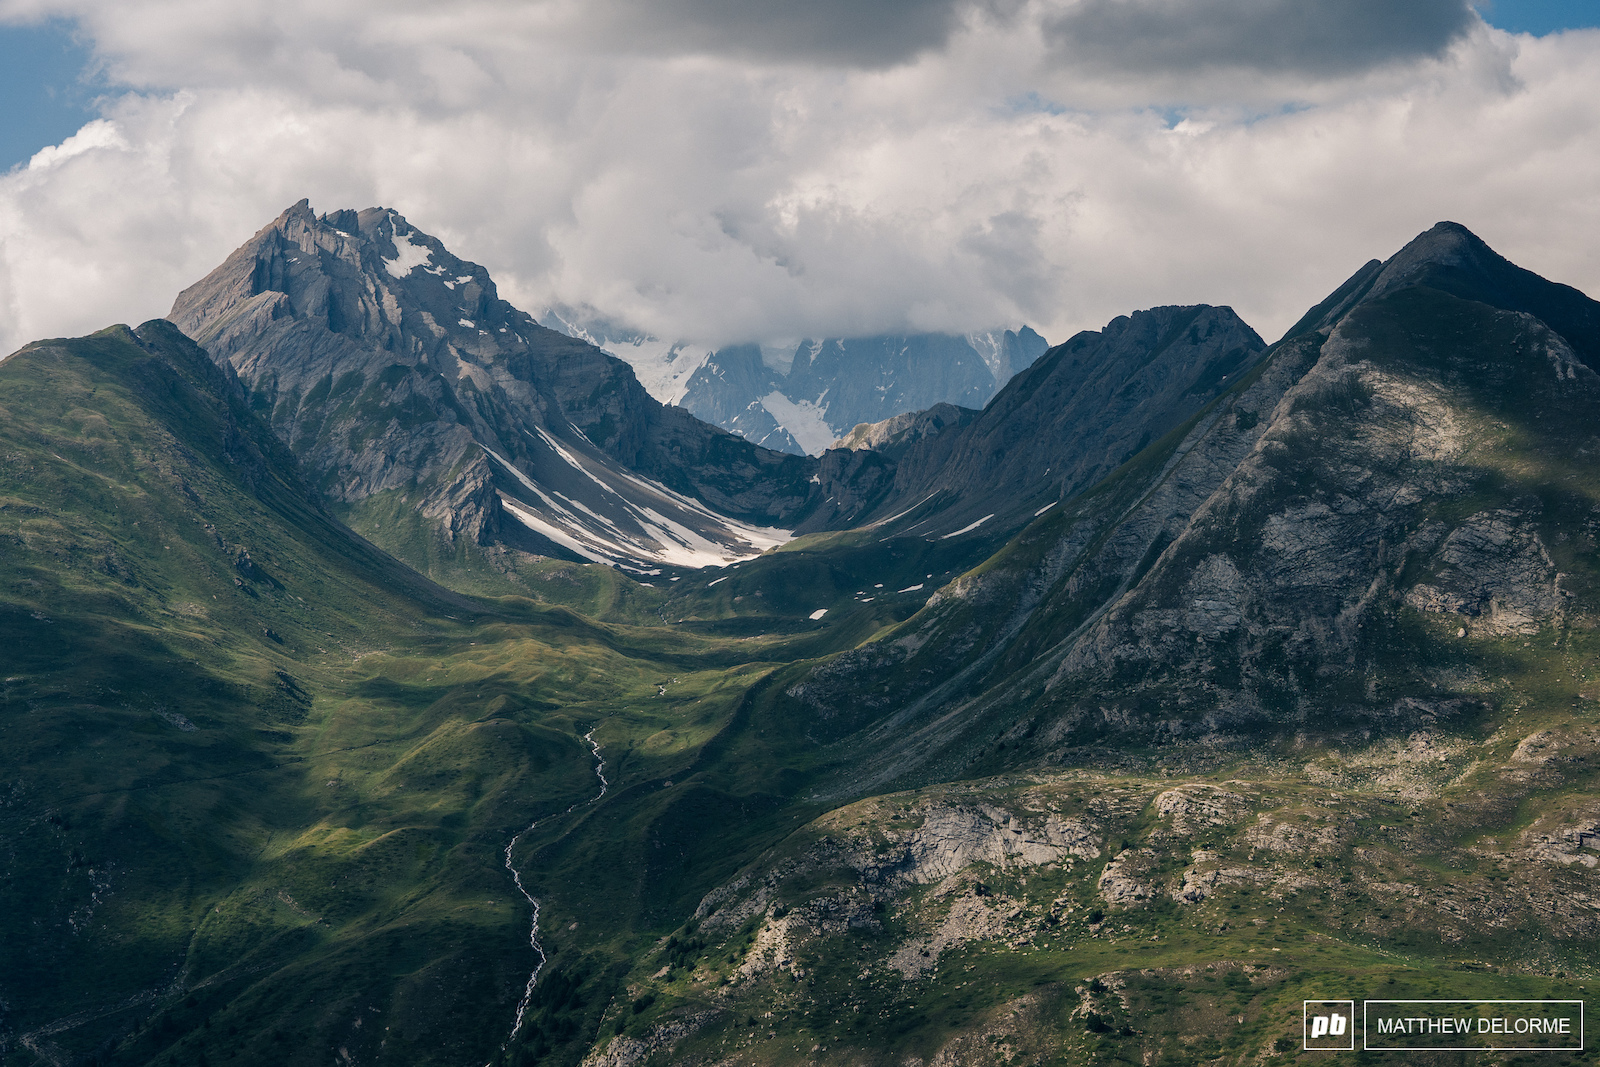 Just one of the things La Thuile has in spades- is epic views.